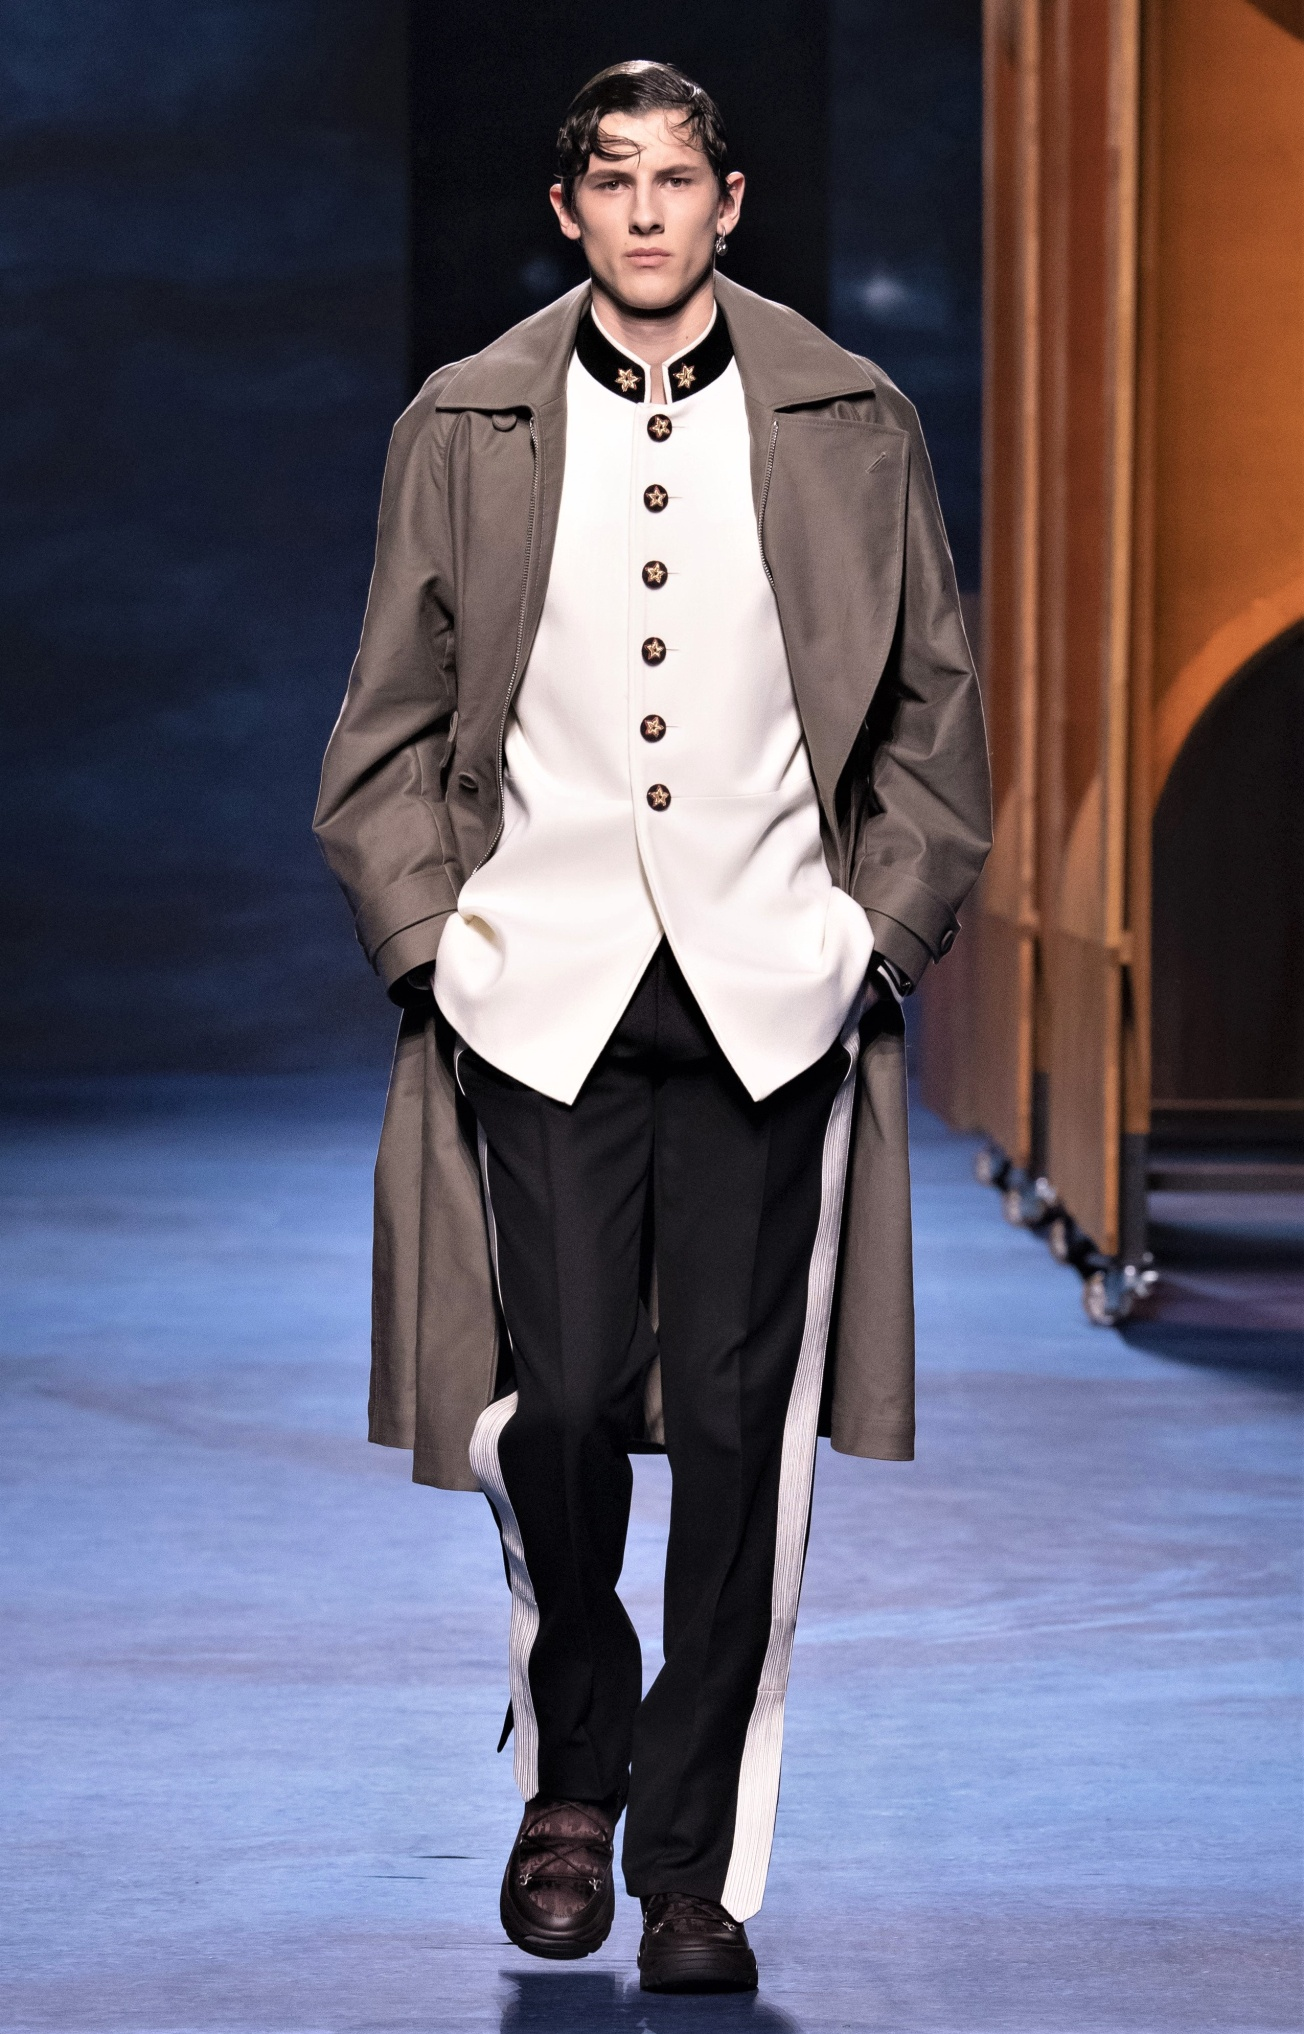 00032-DIOR-MENSWEAR-FALL-21 white coat stand up collar paris cropped.jpg